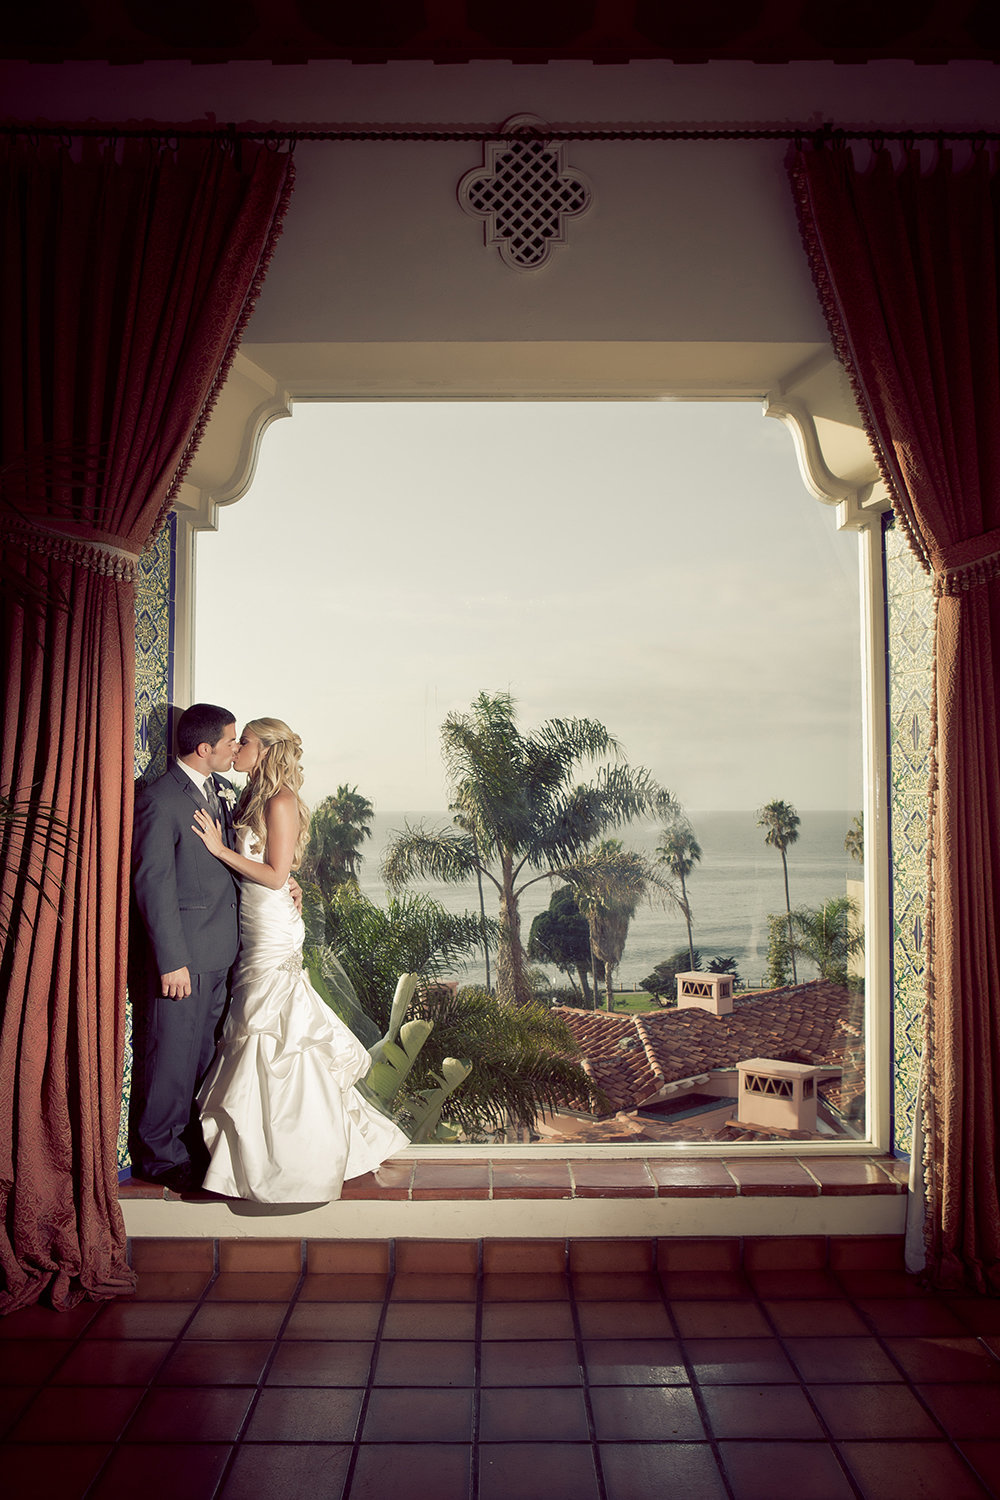 Window with a view wedding portrait at La Valencia.